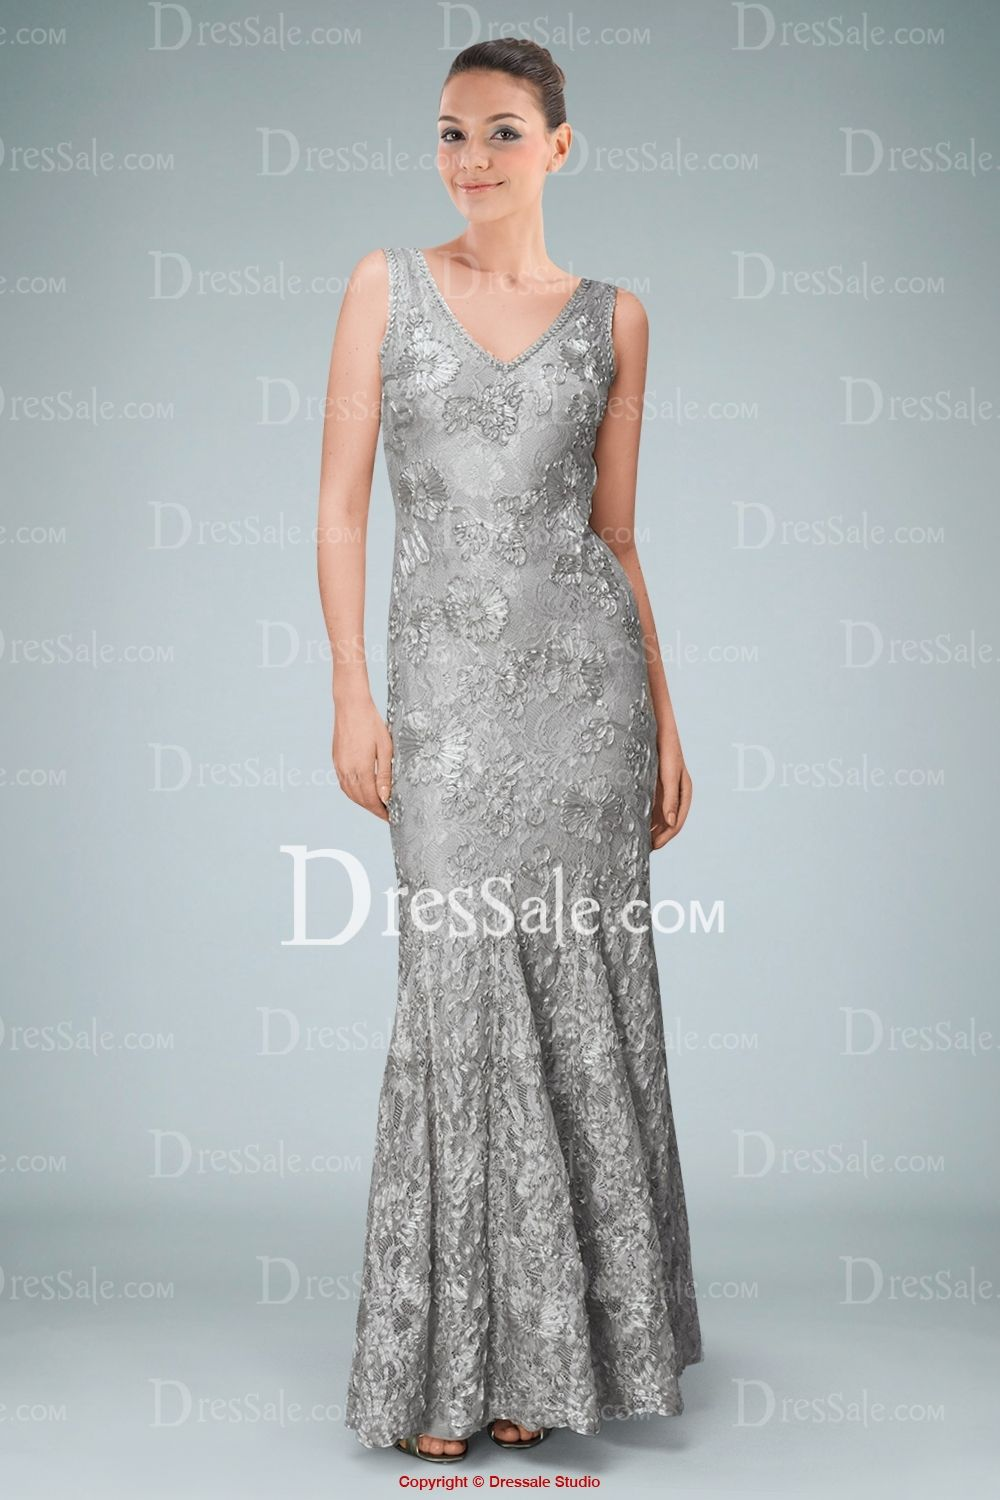 Luxury Silver Ankle length Dress With Sparkling Sequins for